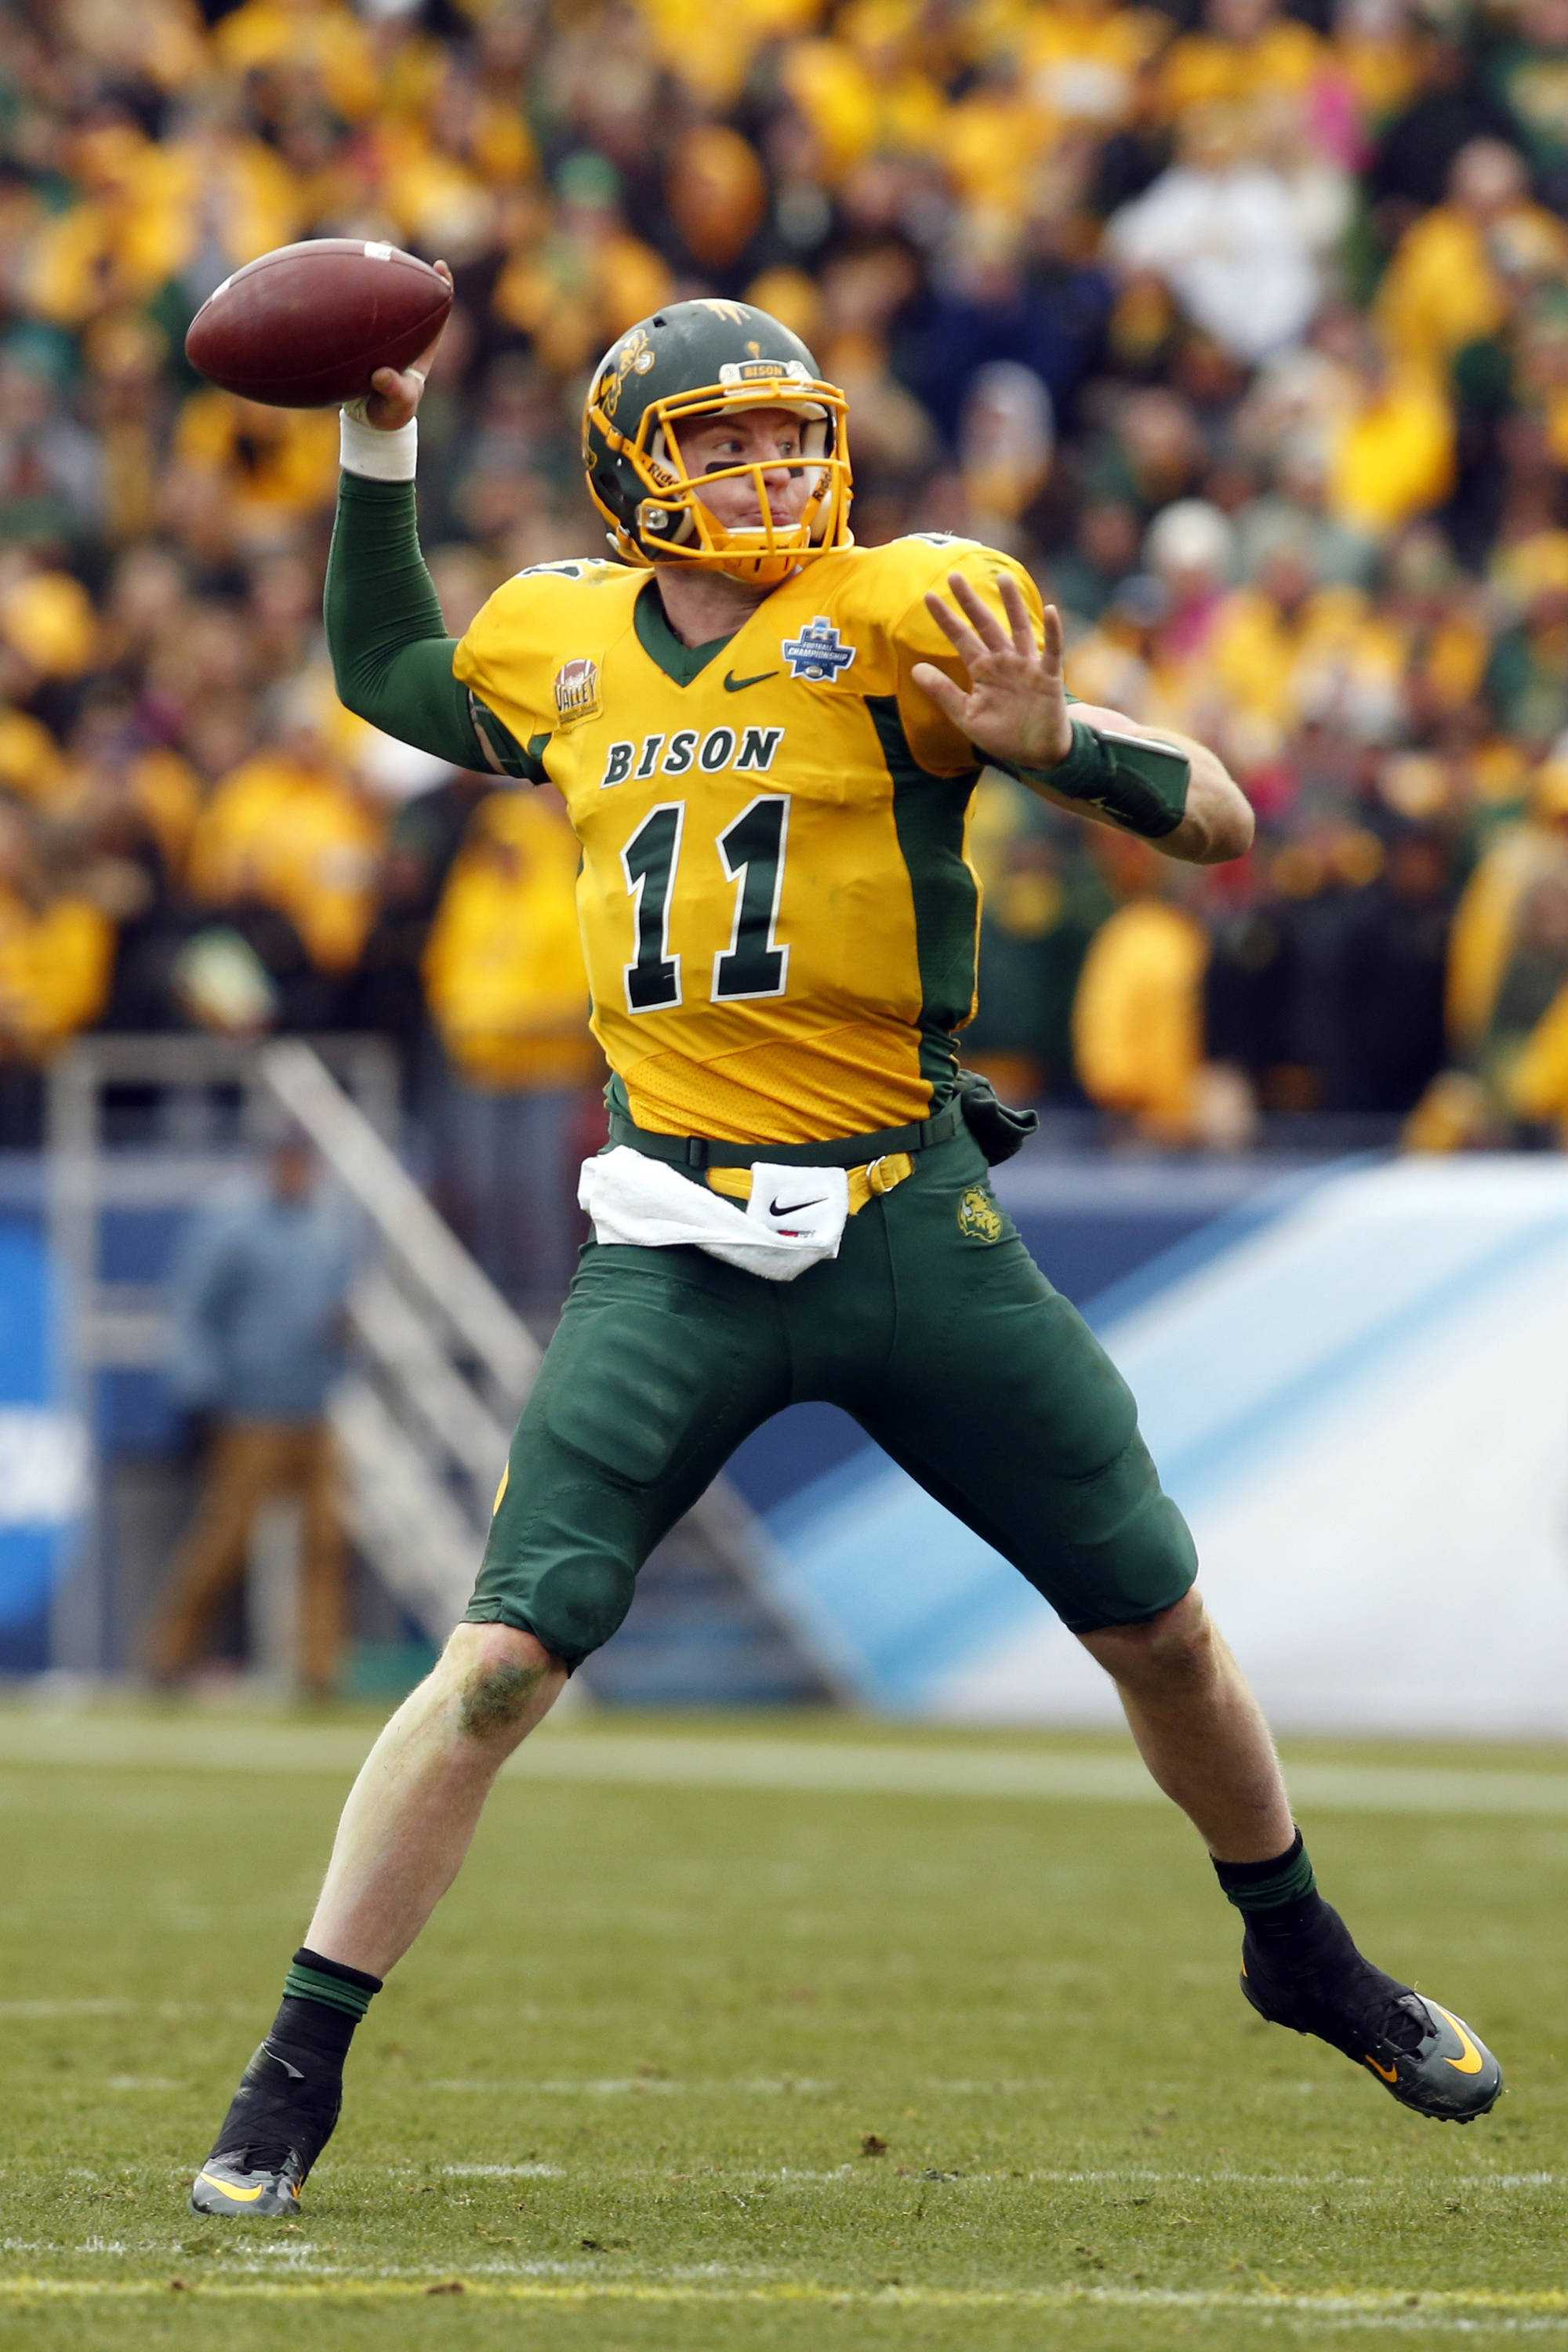 Carson Wentz came out of nowhere in this draft process. Could he be the first overall pick in this year's NFL Draft?